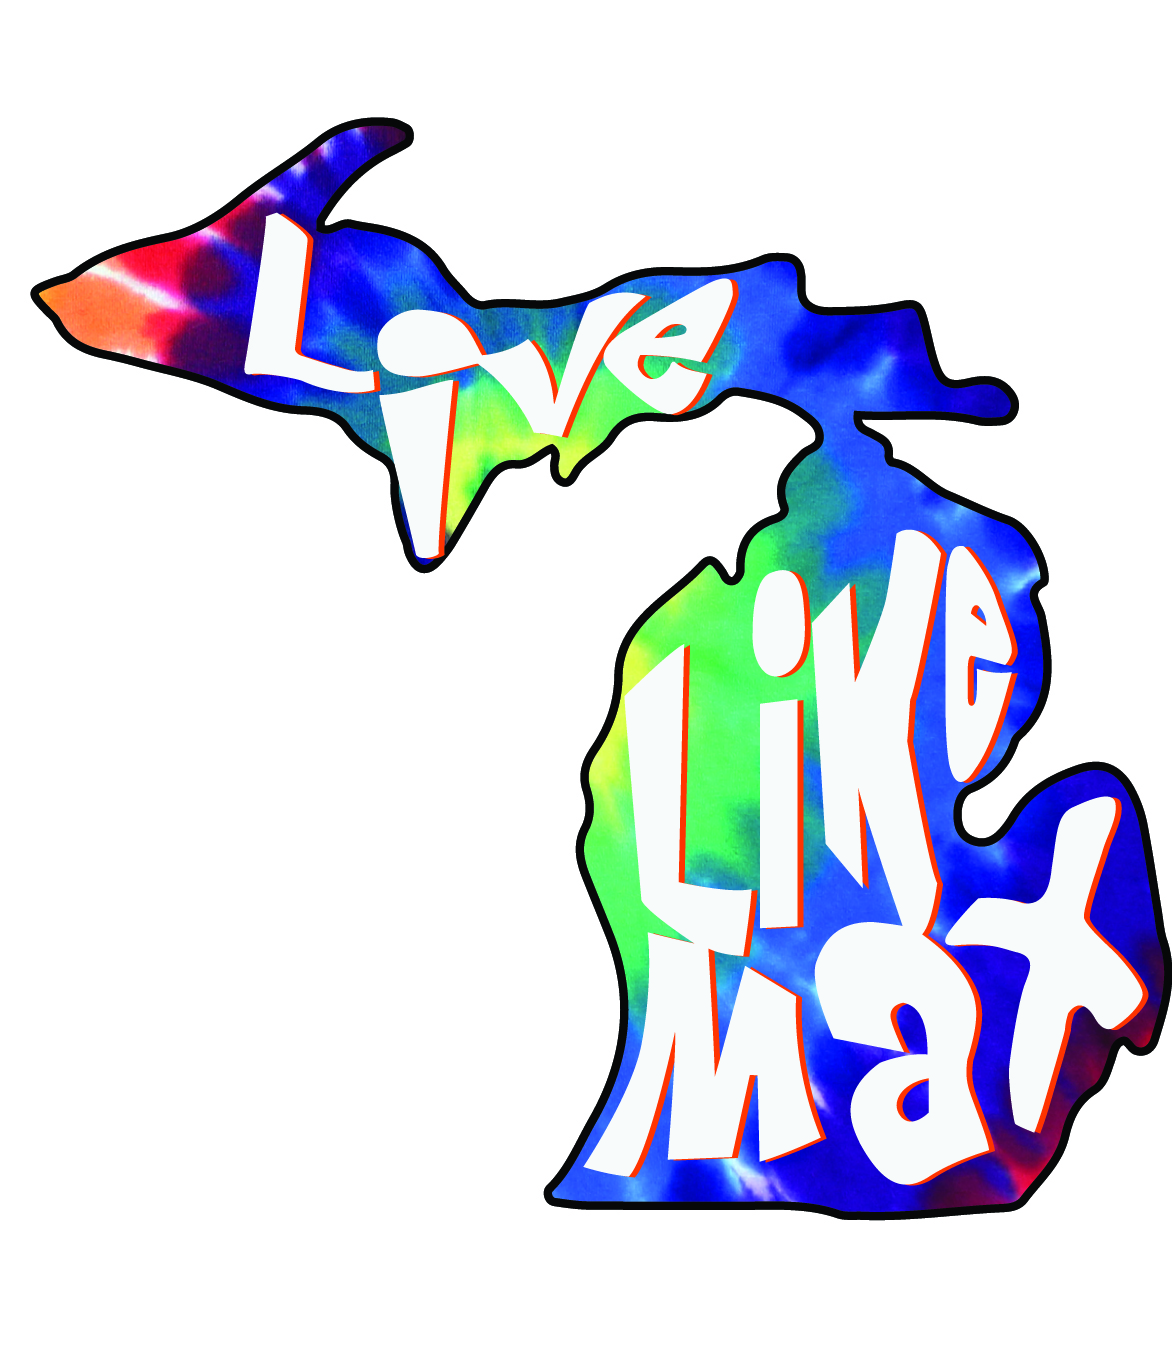 LiveLikeMax Michigan Sticker